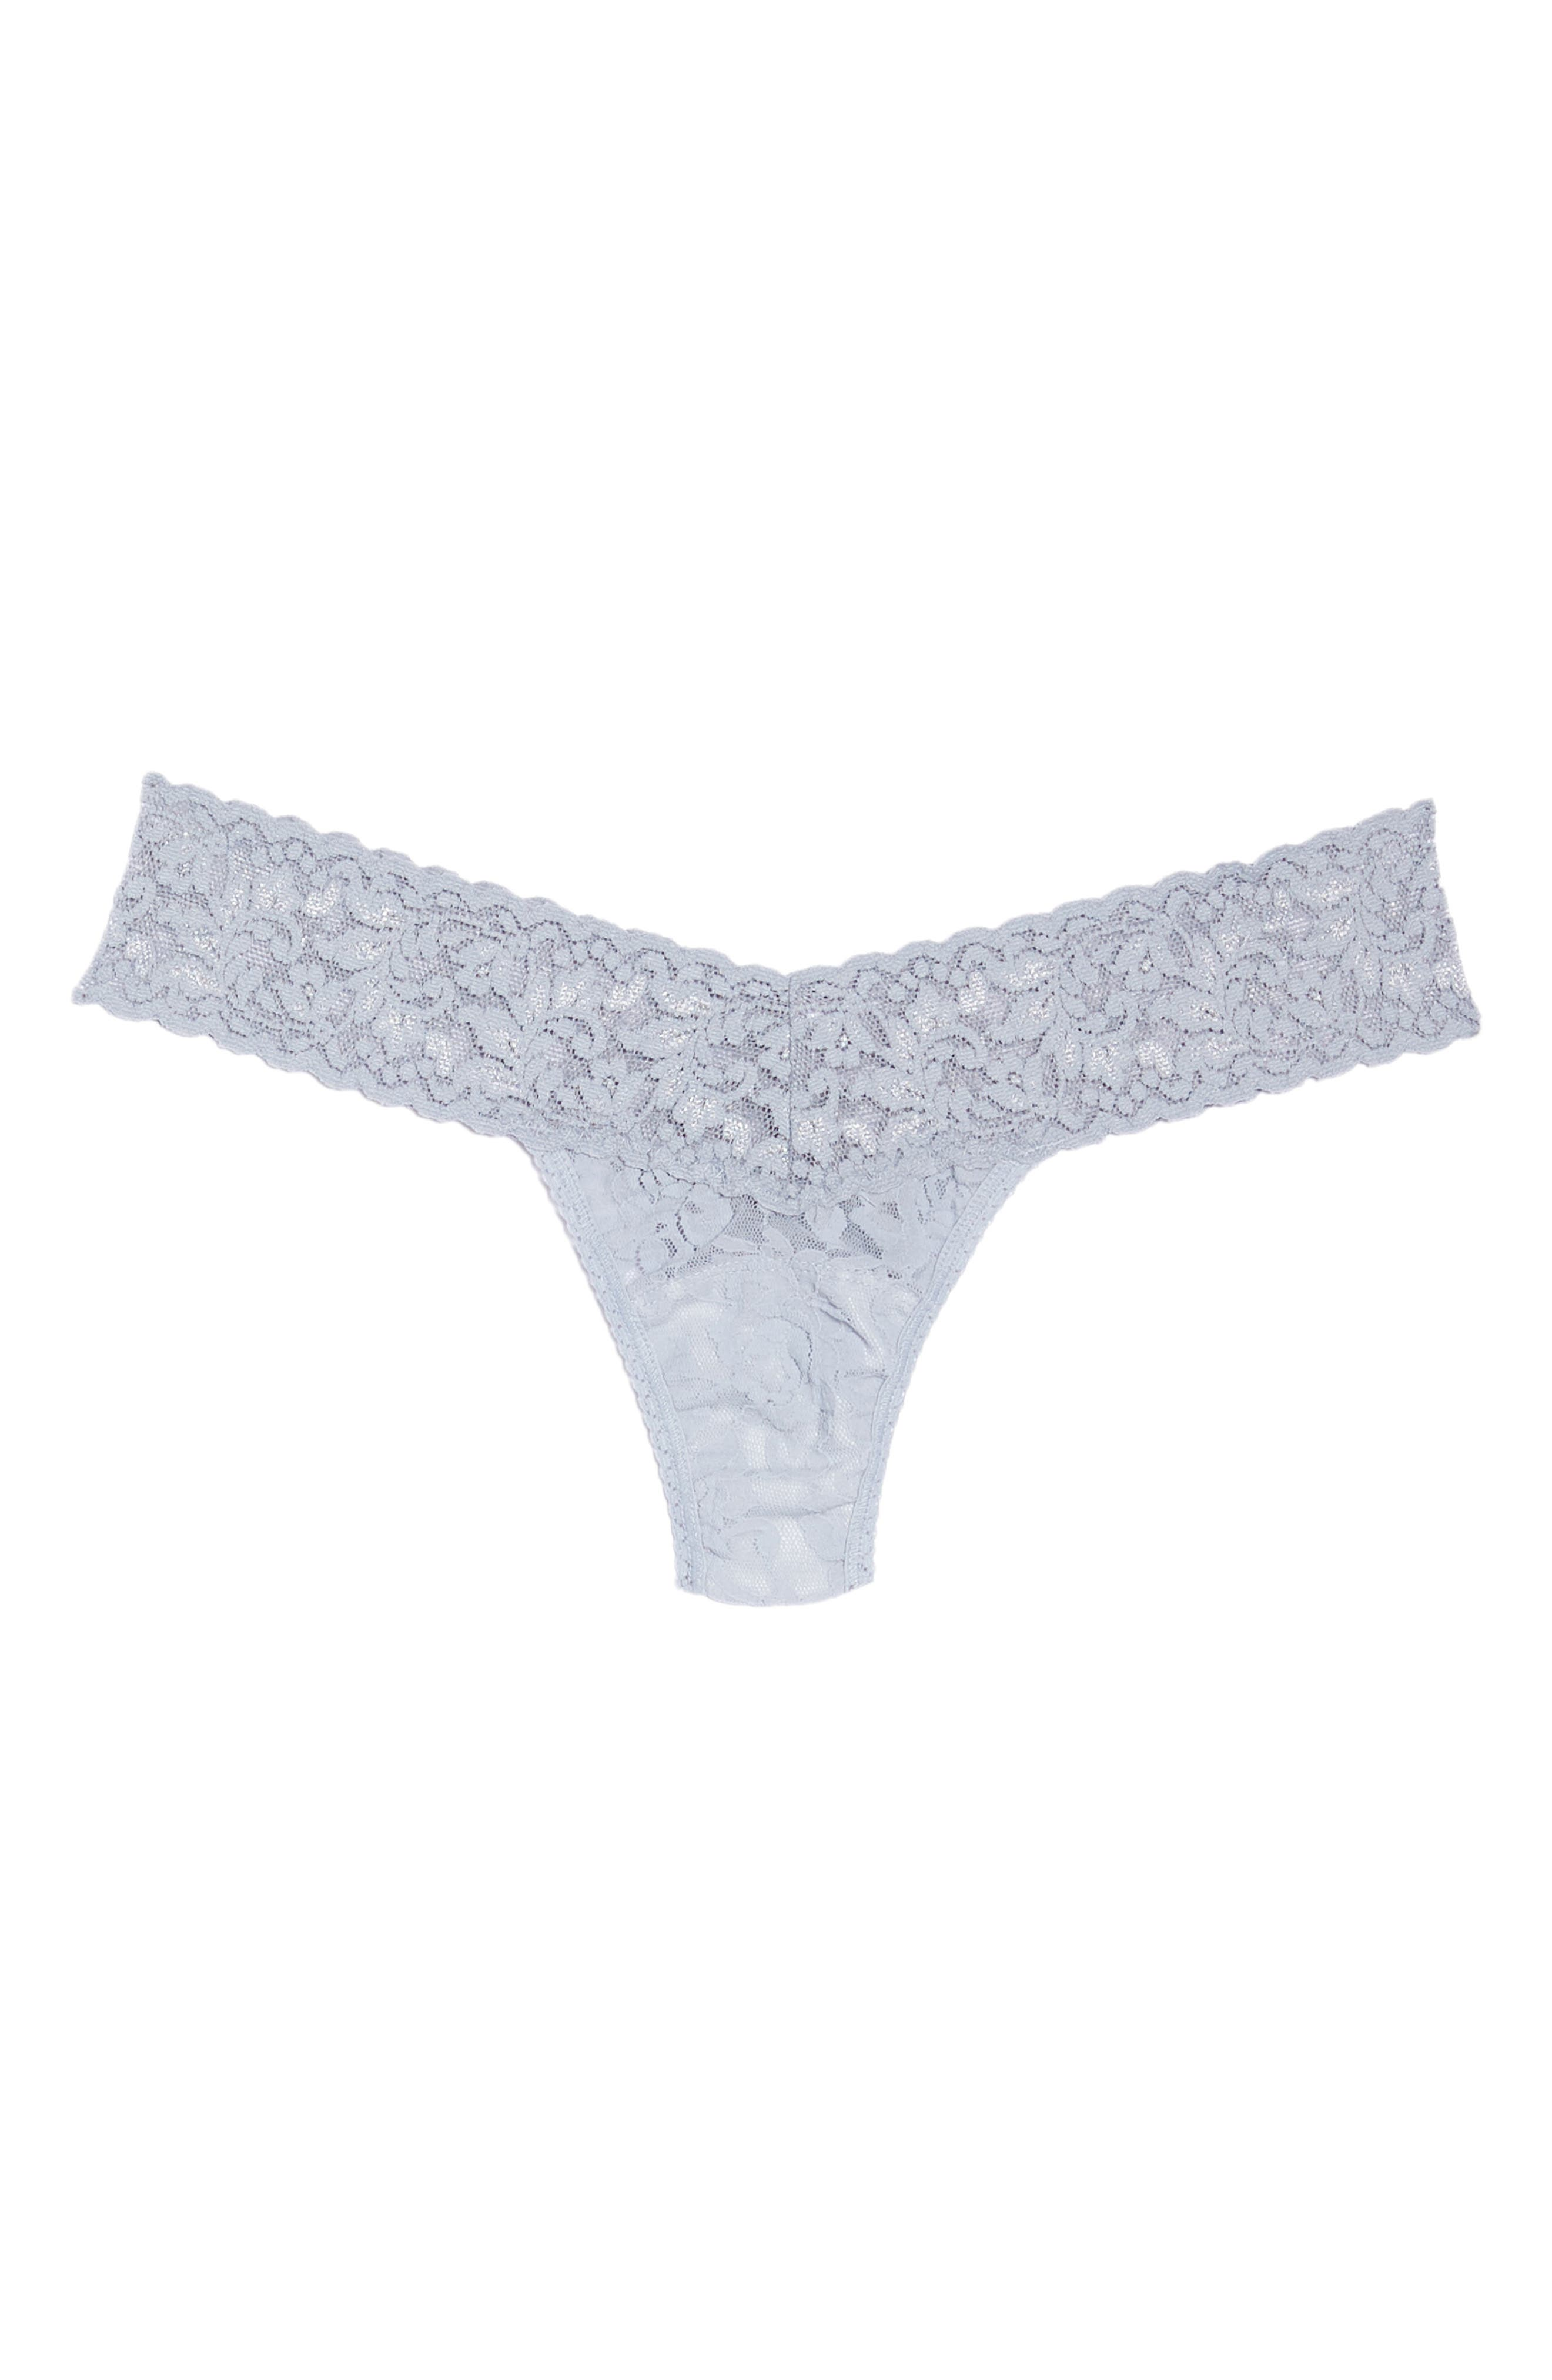 Signature Lace Low Rise Thong,                             Alternate thumbnail 6, color,                             SHINING ARMOUR